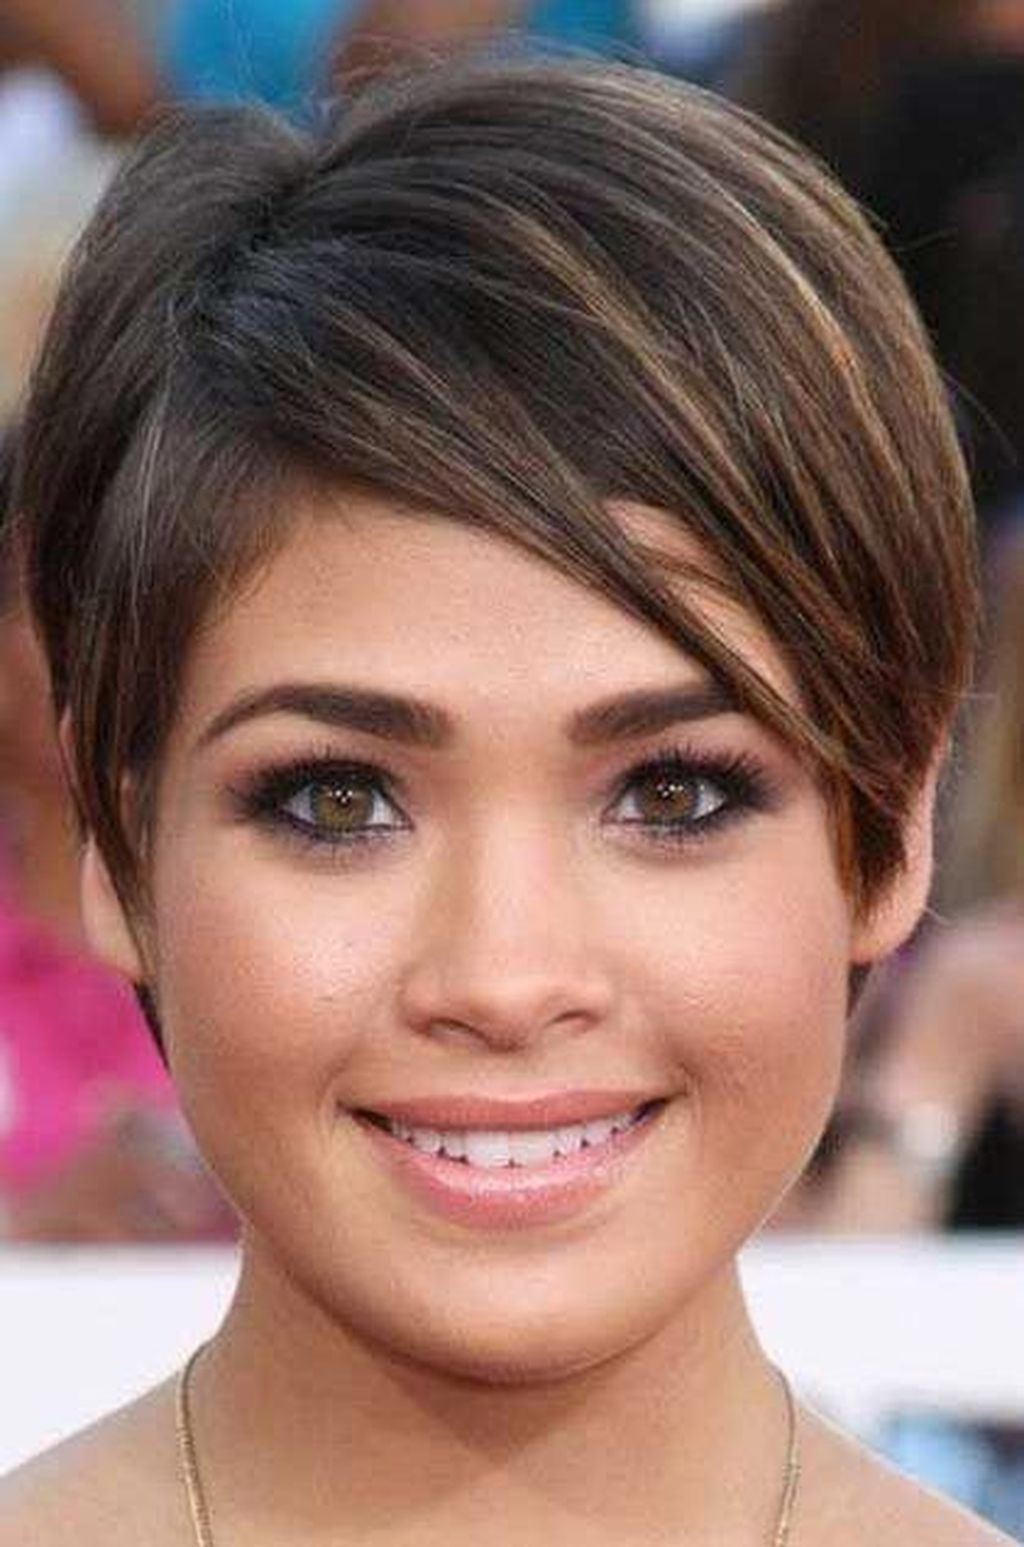 40 adorable short hairstyle ideas for women with round